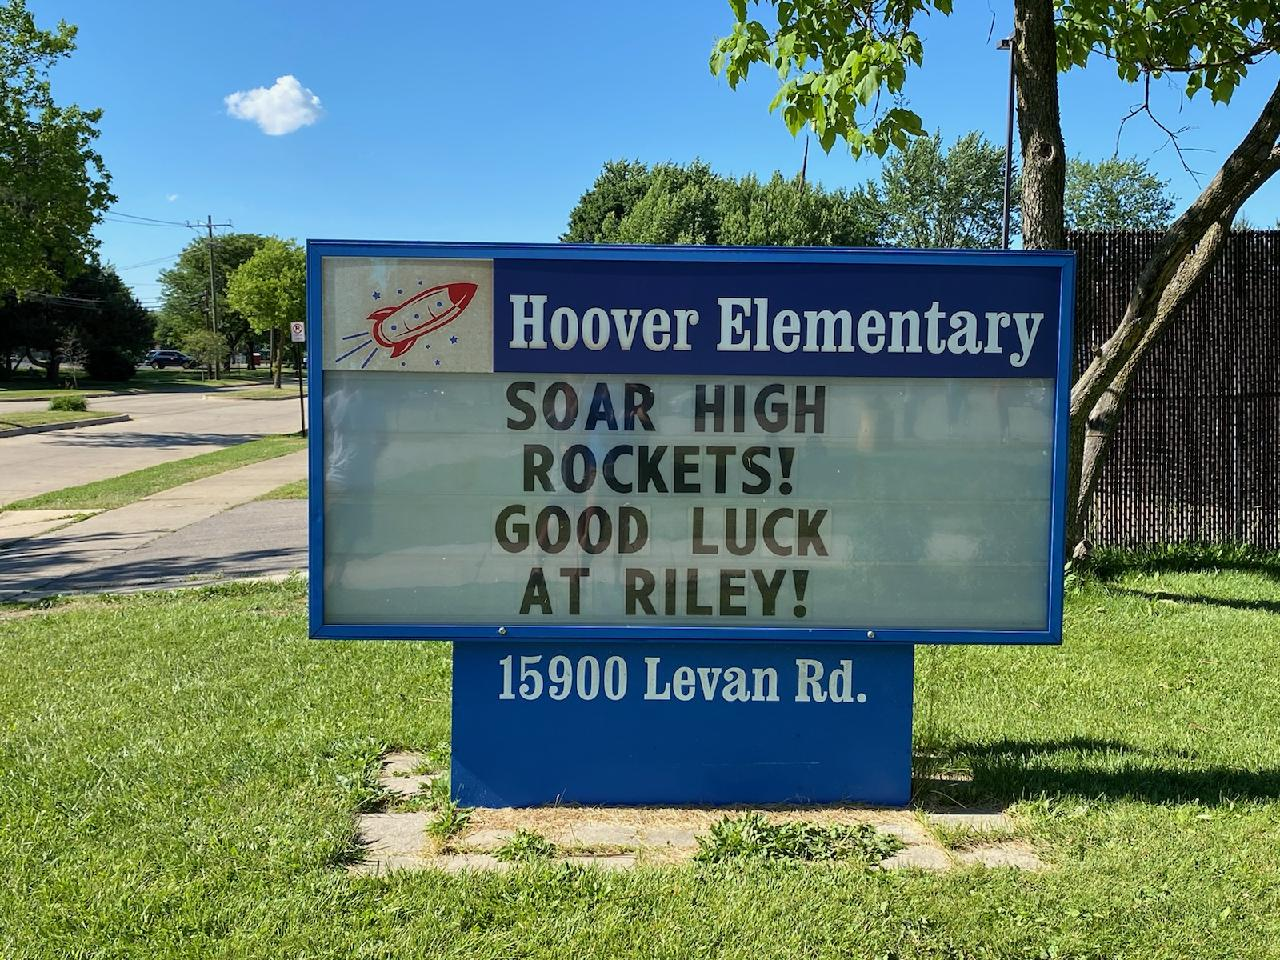 Soar High Rockets!